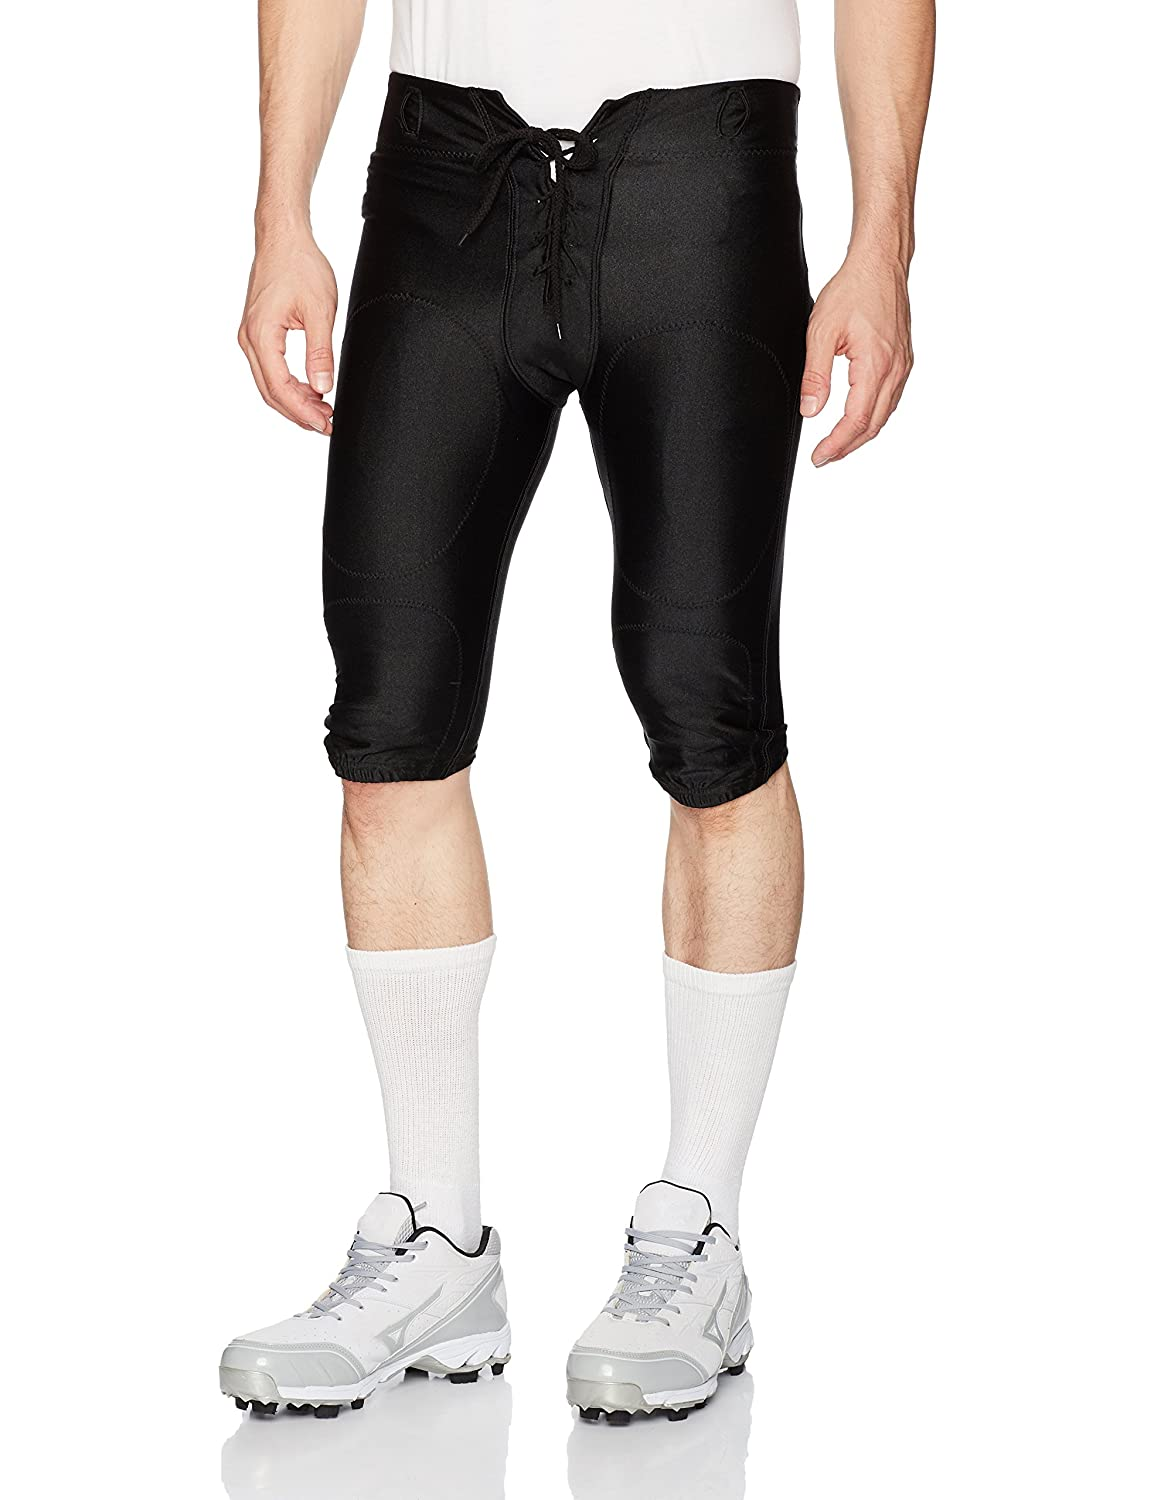 Intensity Mens Game Football Pant